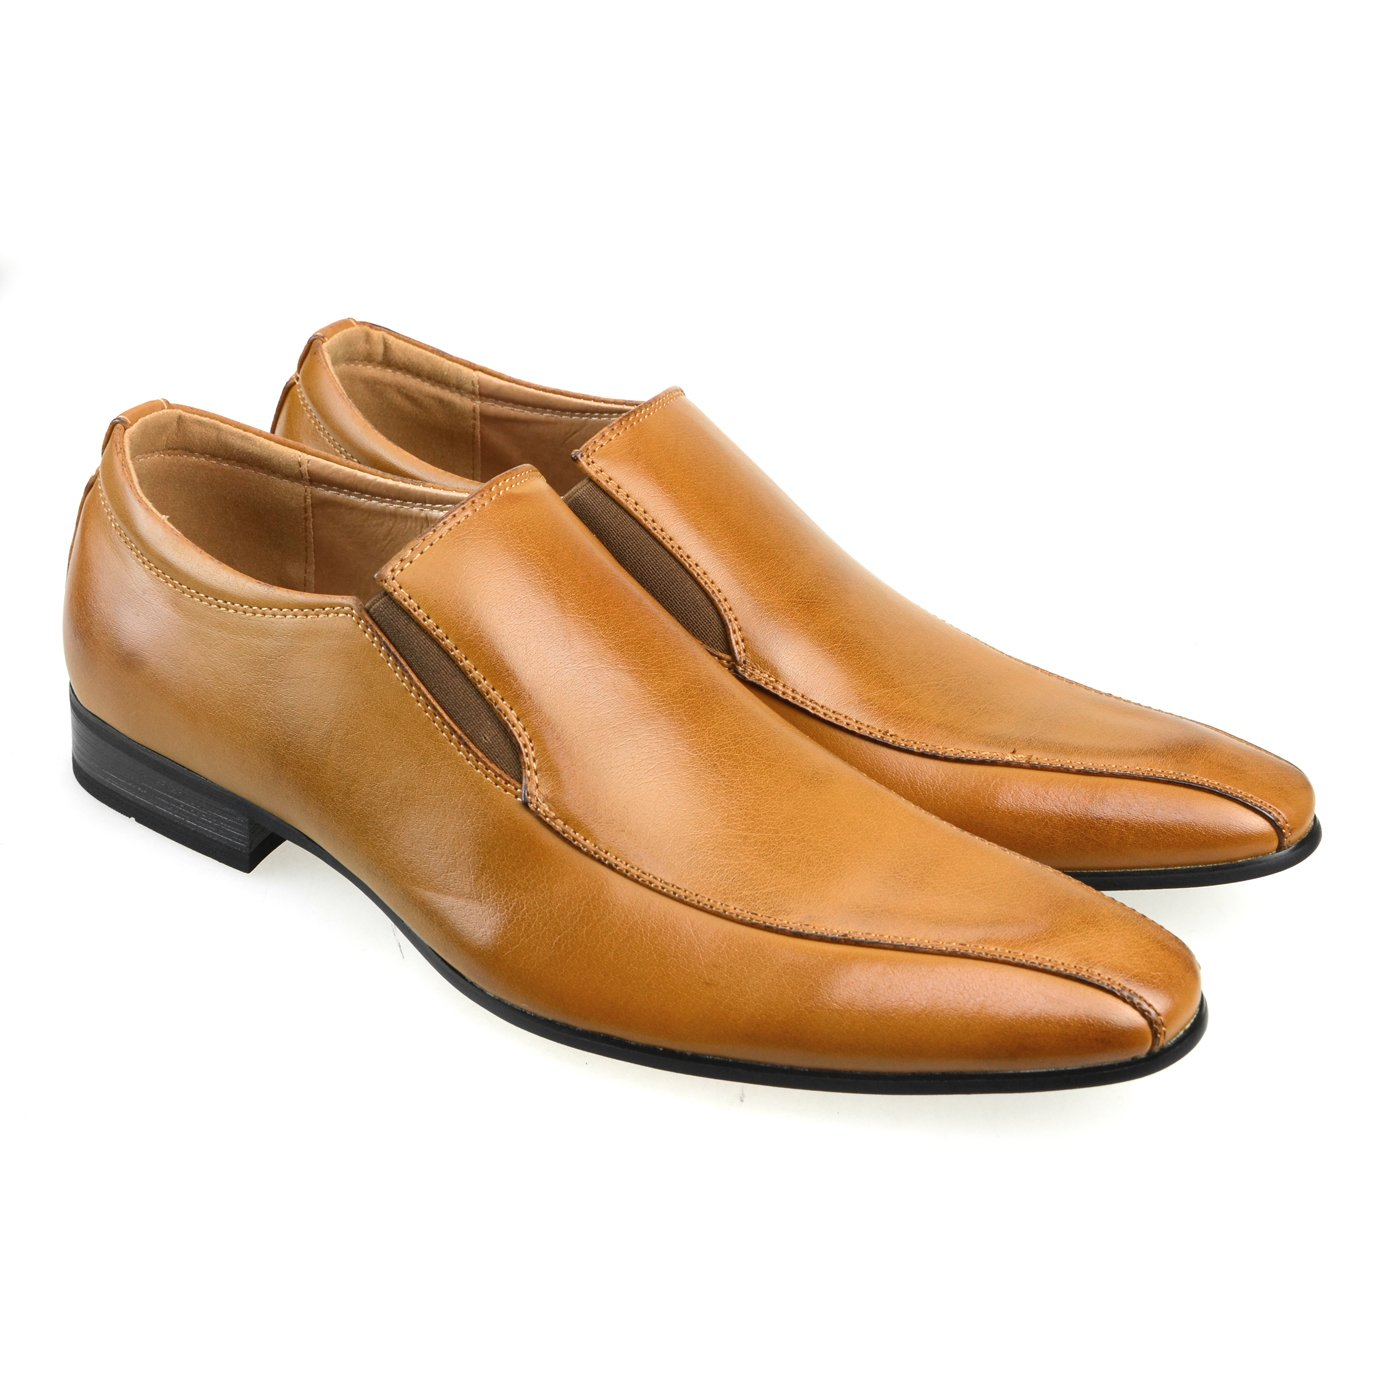 MM/ONE Mens Shoes Slipon Dress Shoes Oxford Laceup Shoes Gift Shoes Brown 43 EU (US Men's 10 M) by MM/ONE